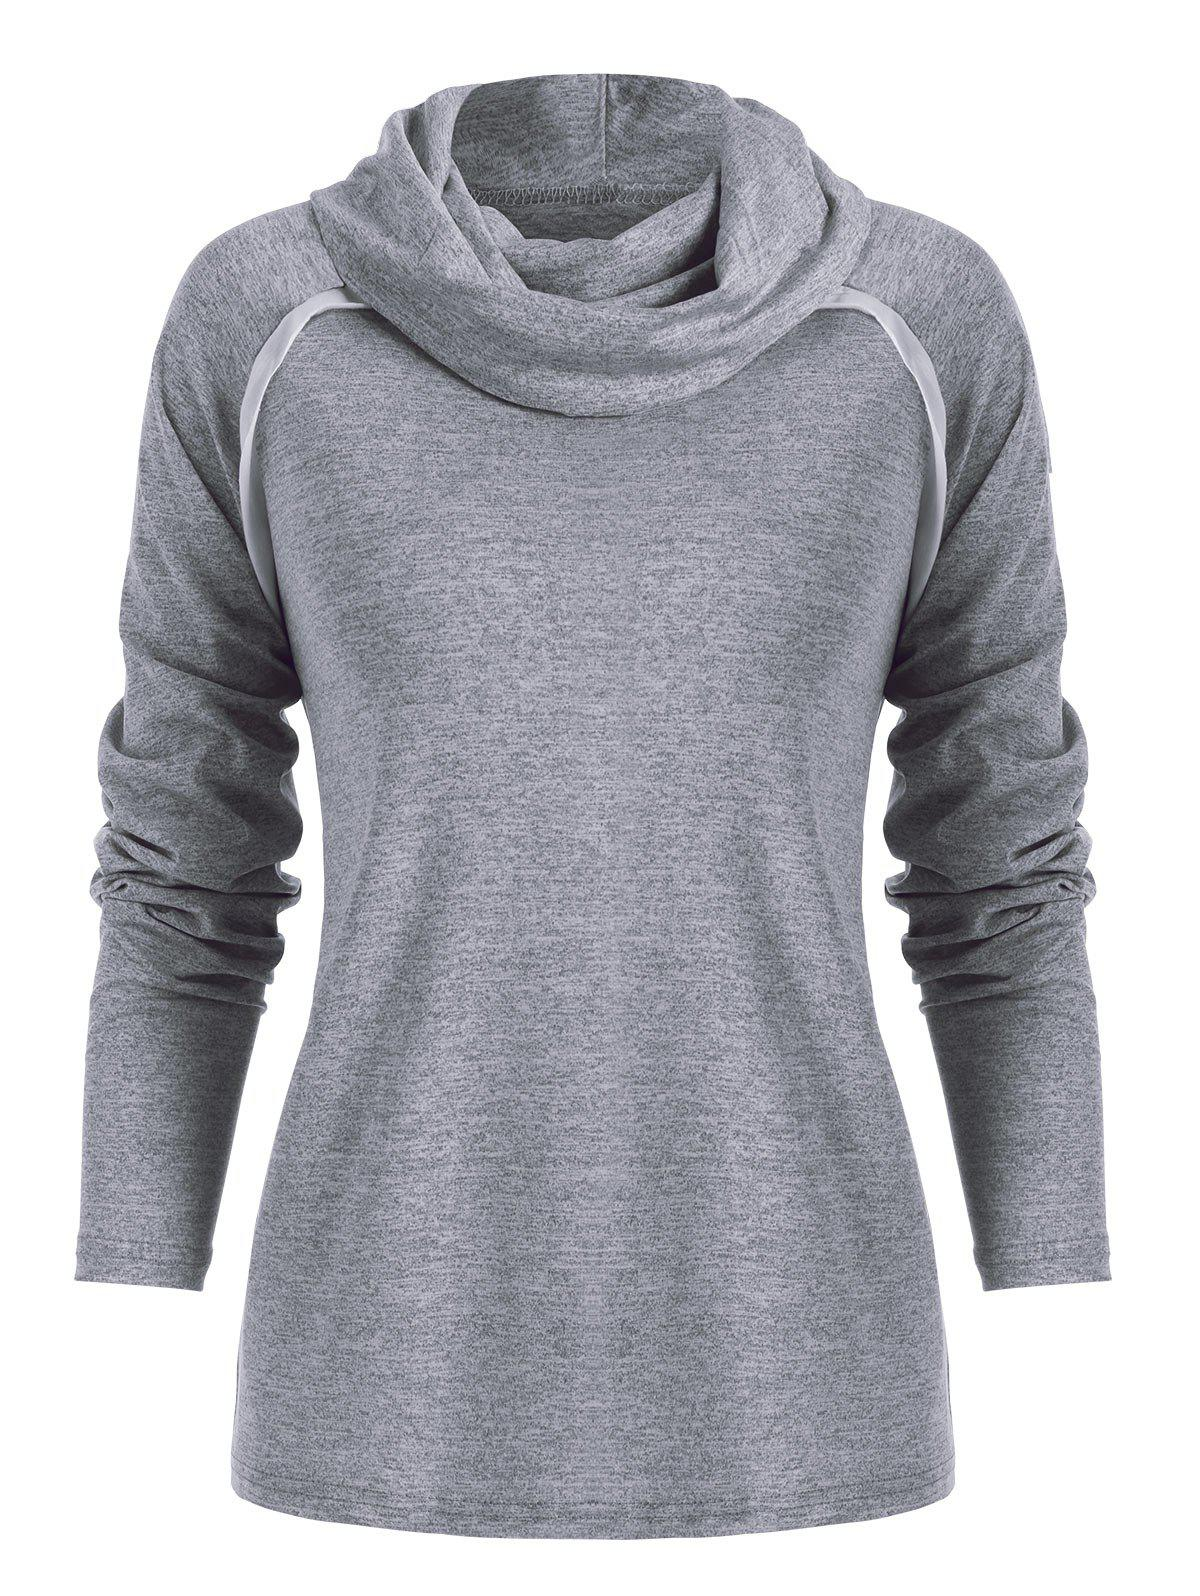 Affordable Cowl Neck Contrast Color Marled T Shirt